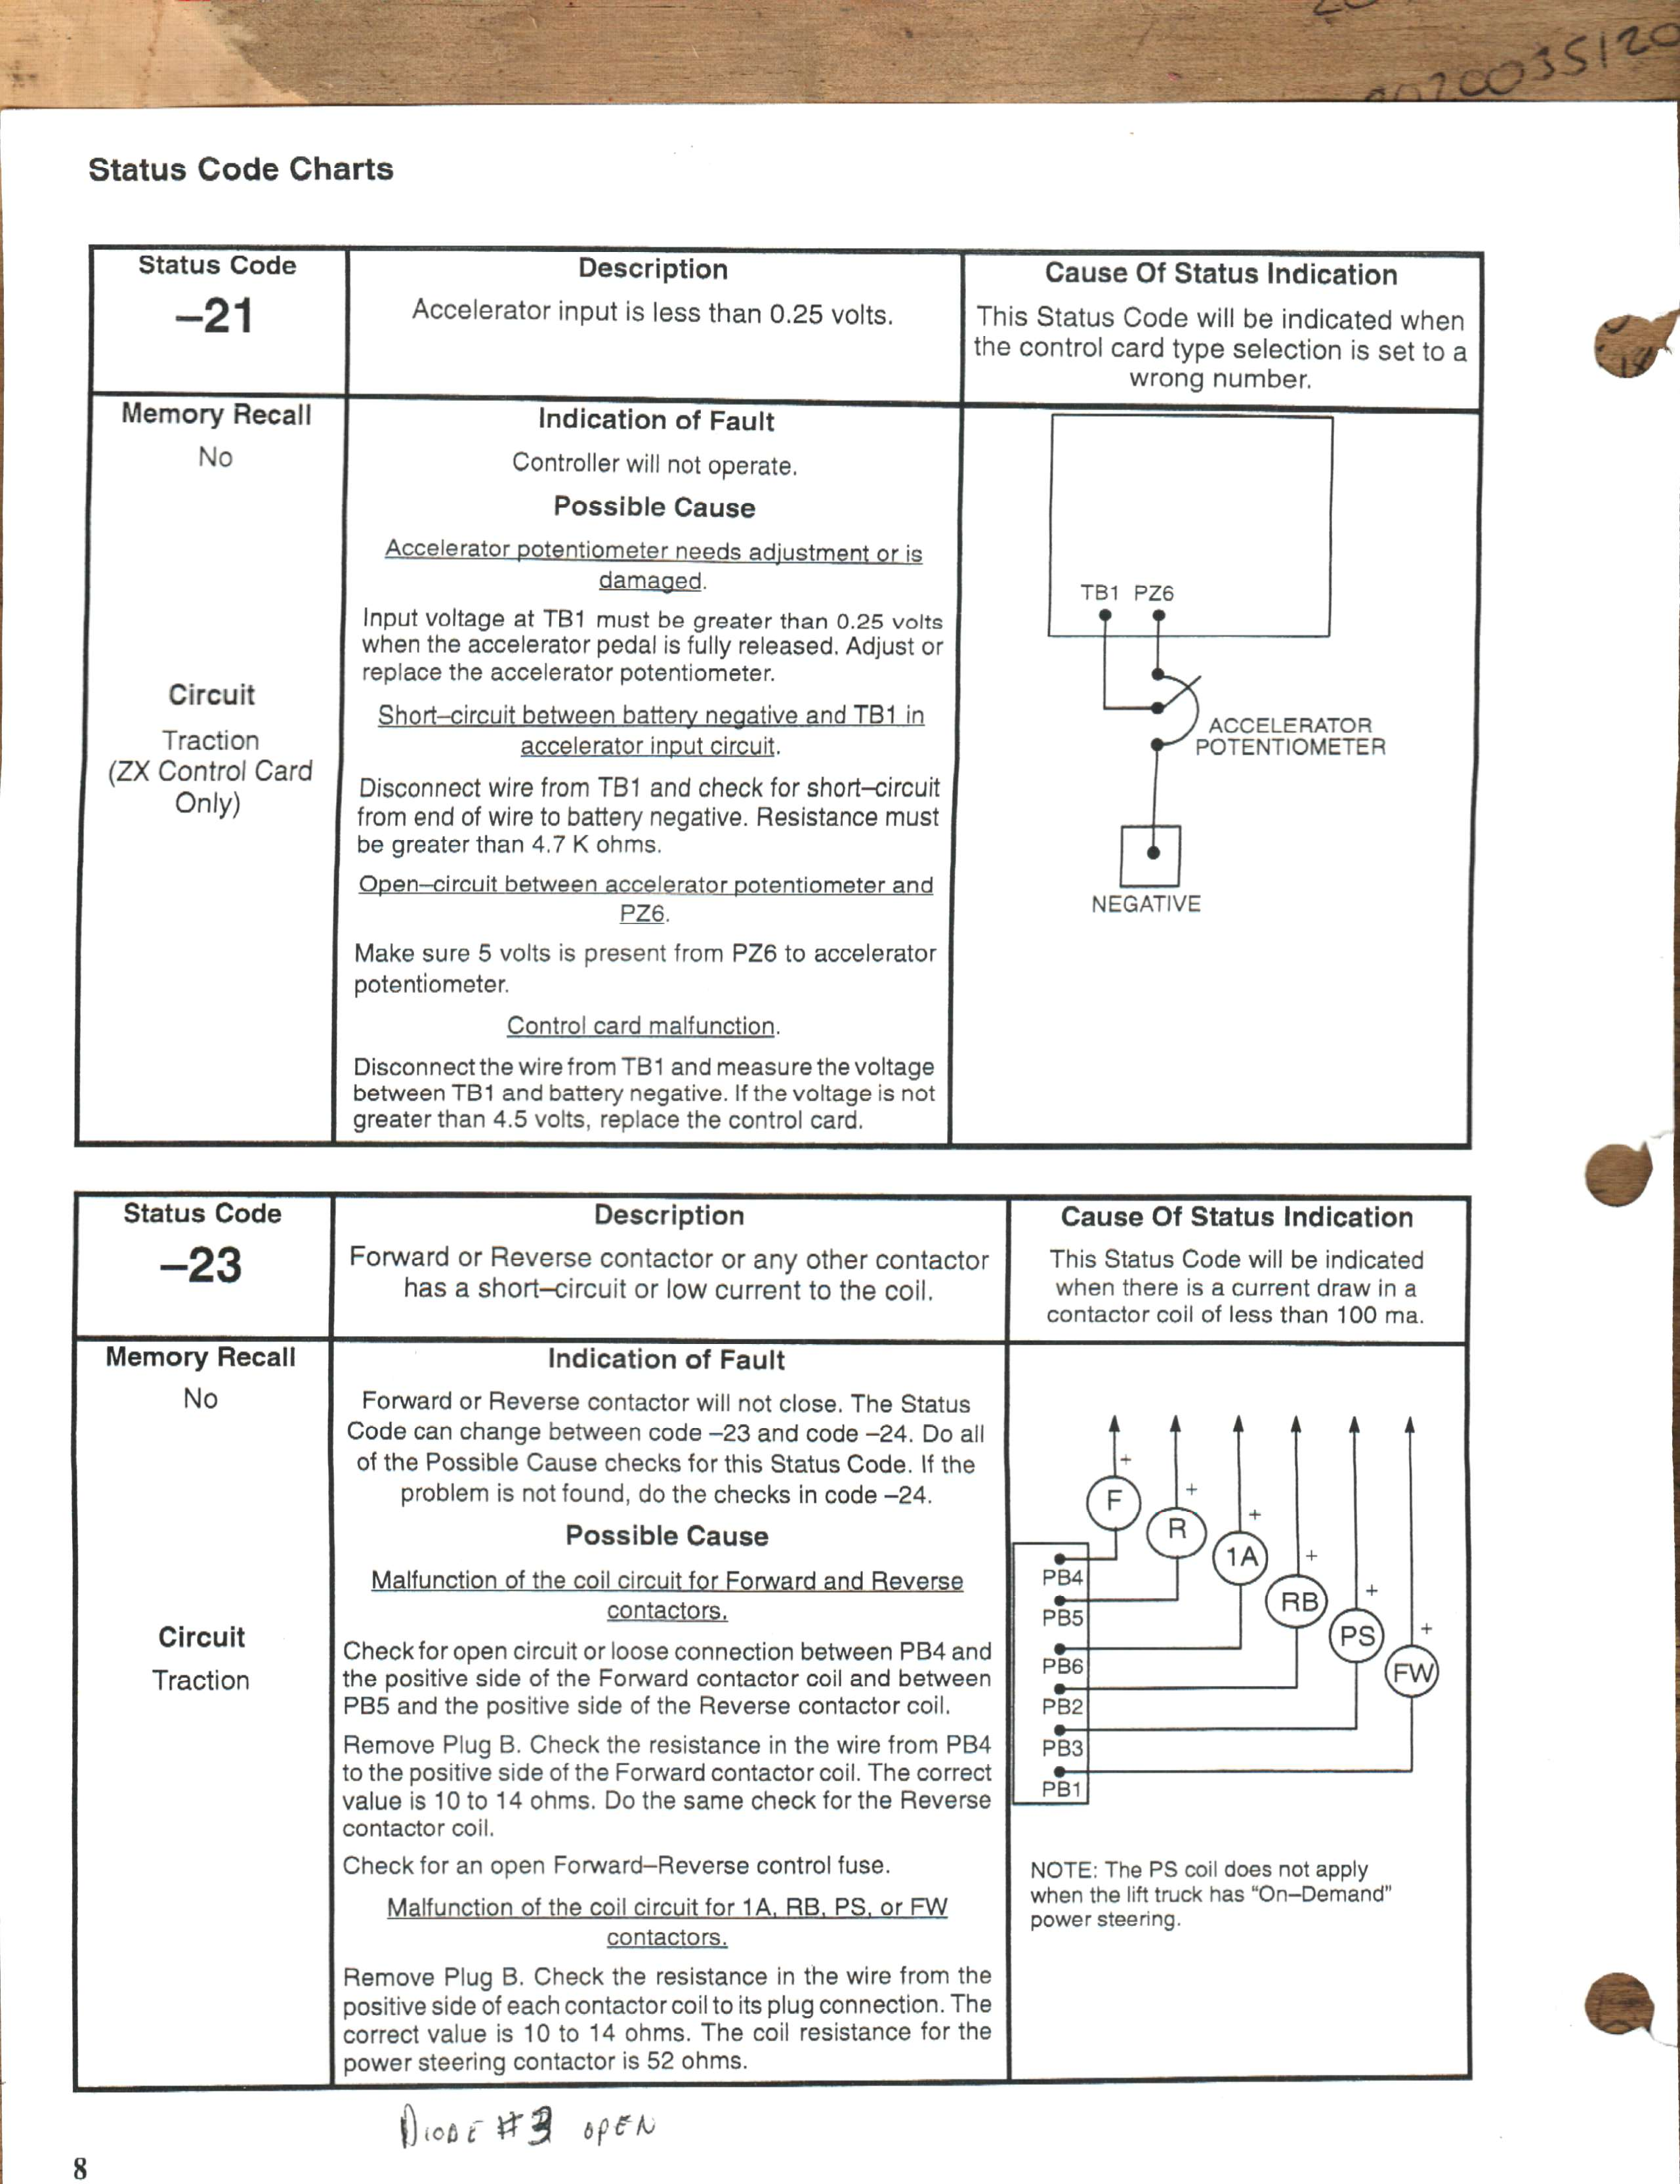 Forklift Diagram Of Parts Automotive Wiring Nissan I Have 48v 6500 Lb And Forward Reverse Is Hyster